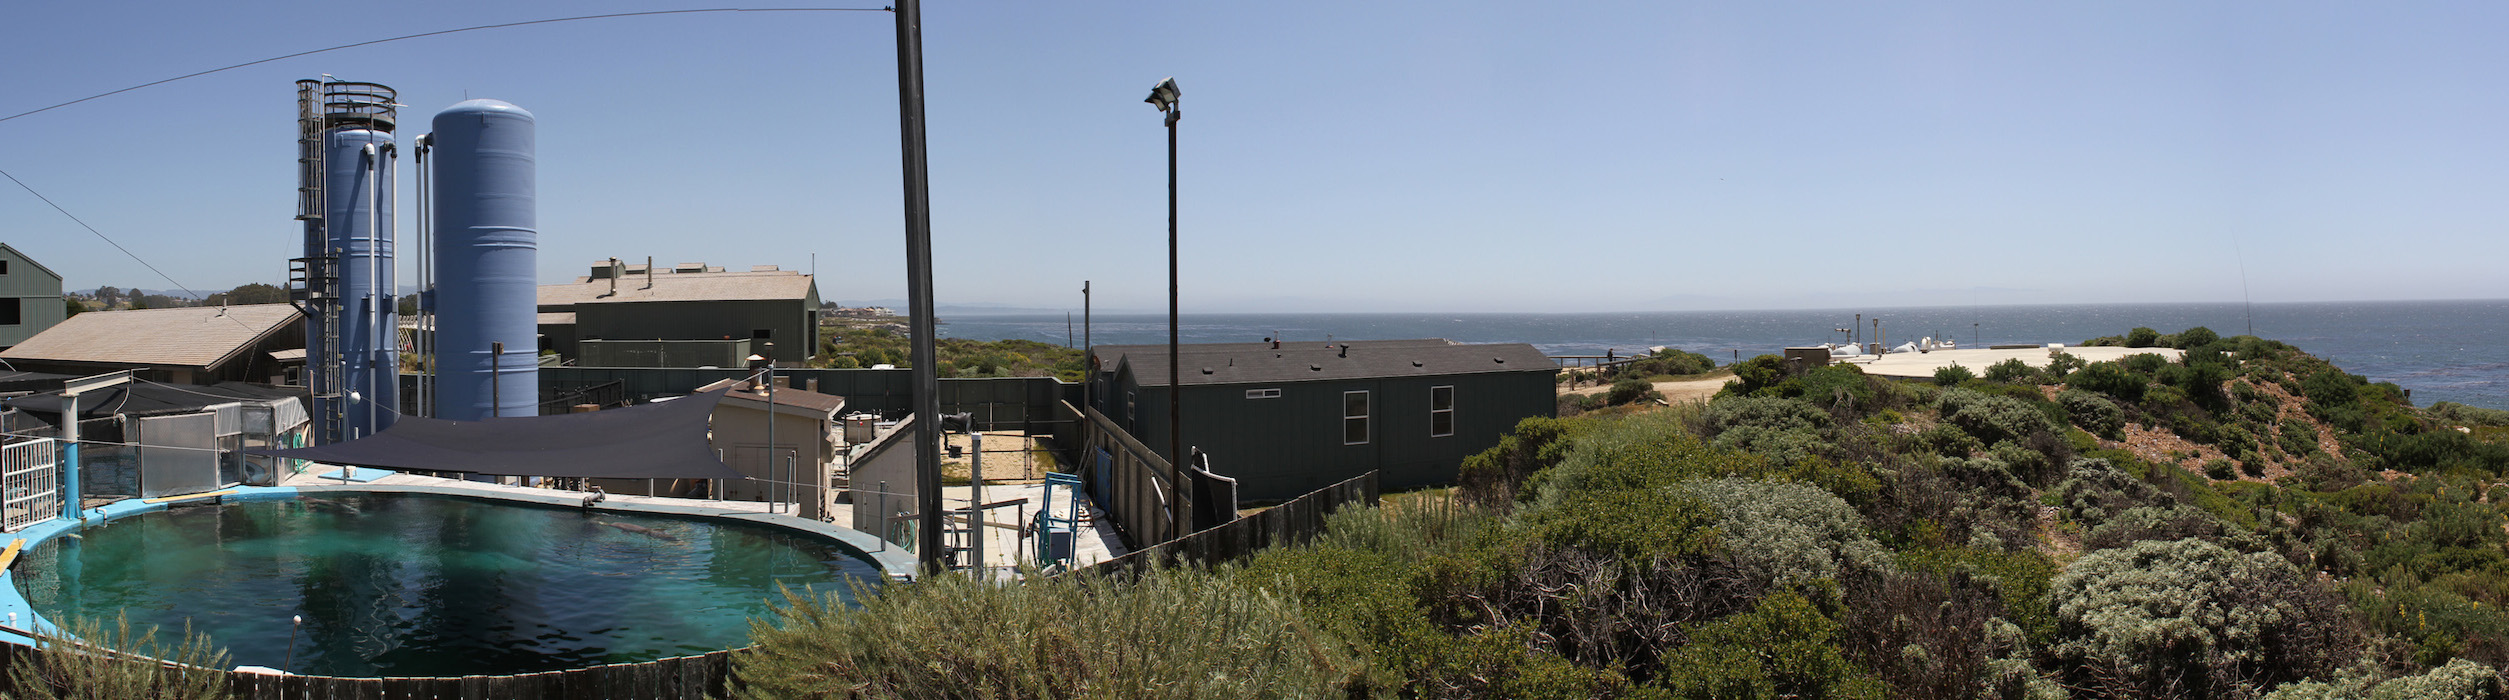 Coastal Science Campus overlook